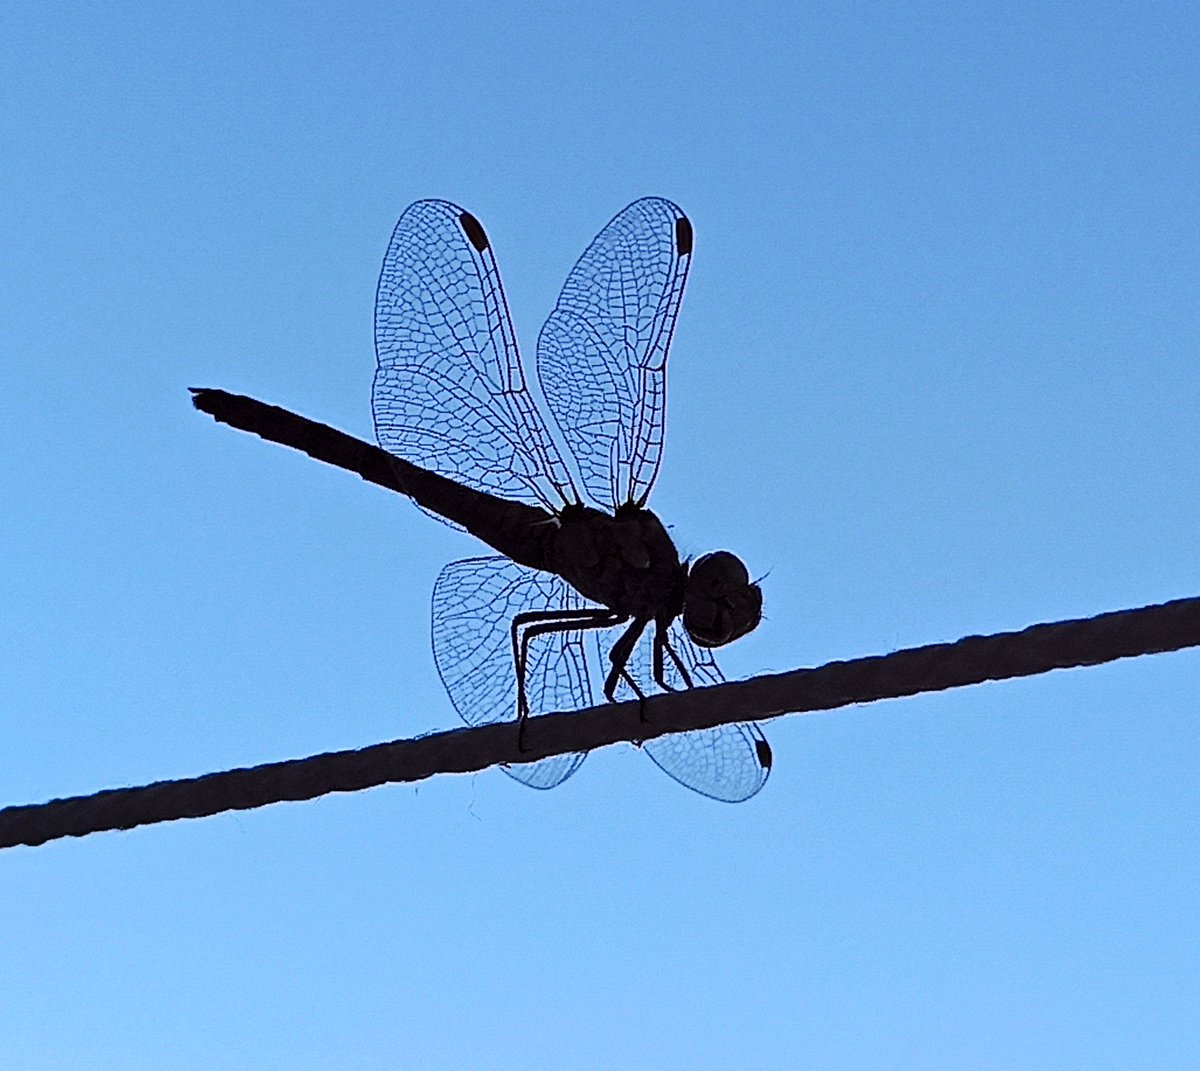 Morning guest... #dragonfly #traveling #natureloverspic.twitter.com/ExbuSZNLFs